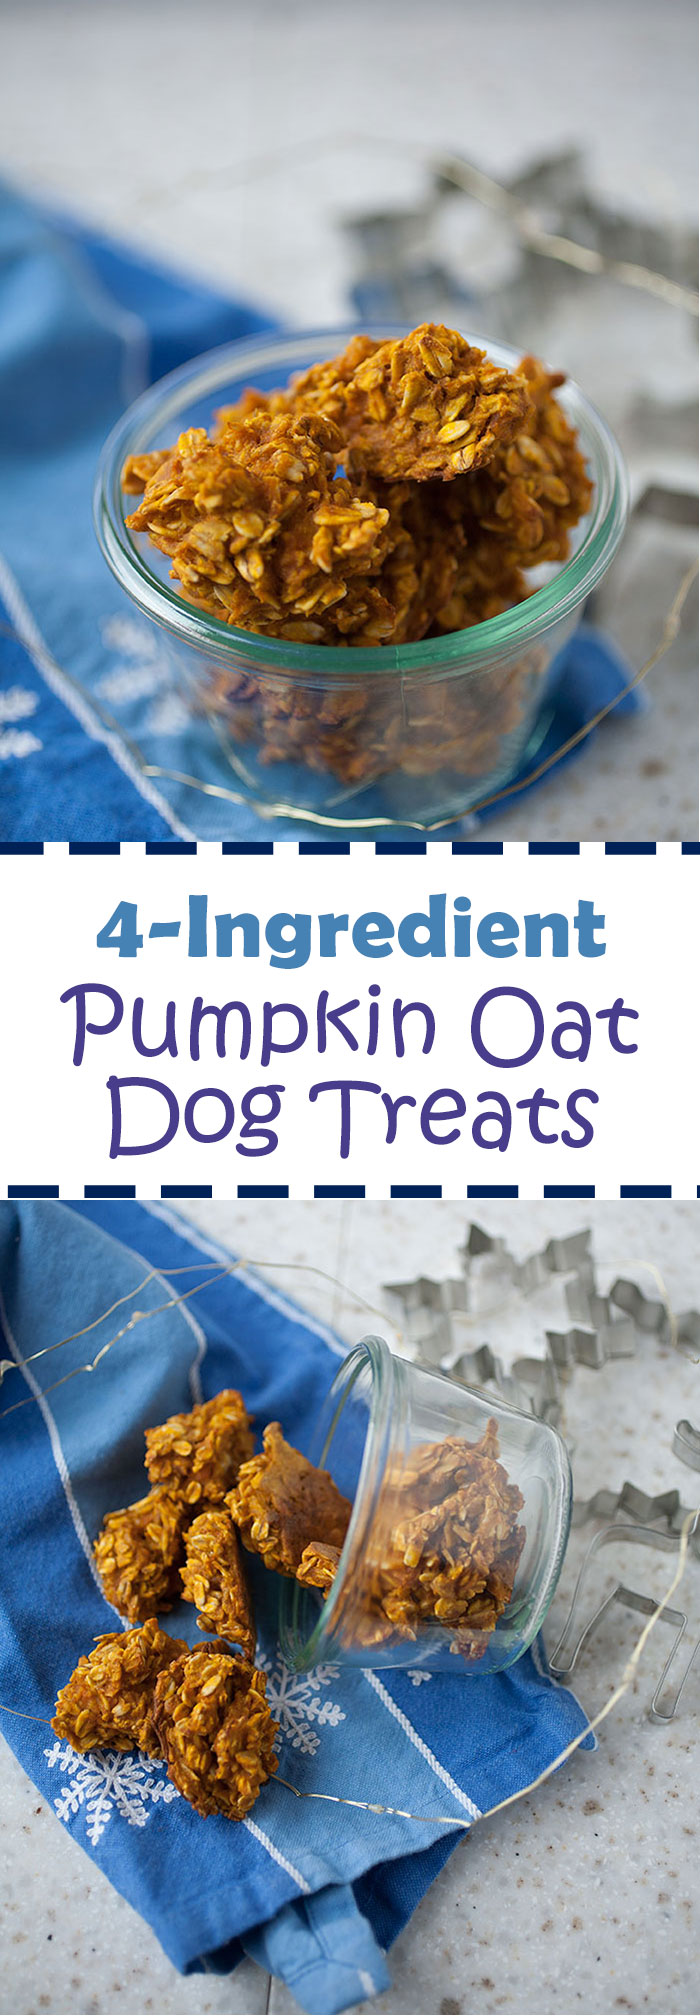 These healthy homemade pumpkin dog treats only take 4 ingredients to make and dogs go crazy over them! They're the perfect homemade holiday gift for your dog.